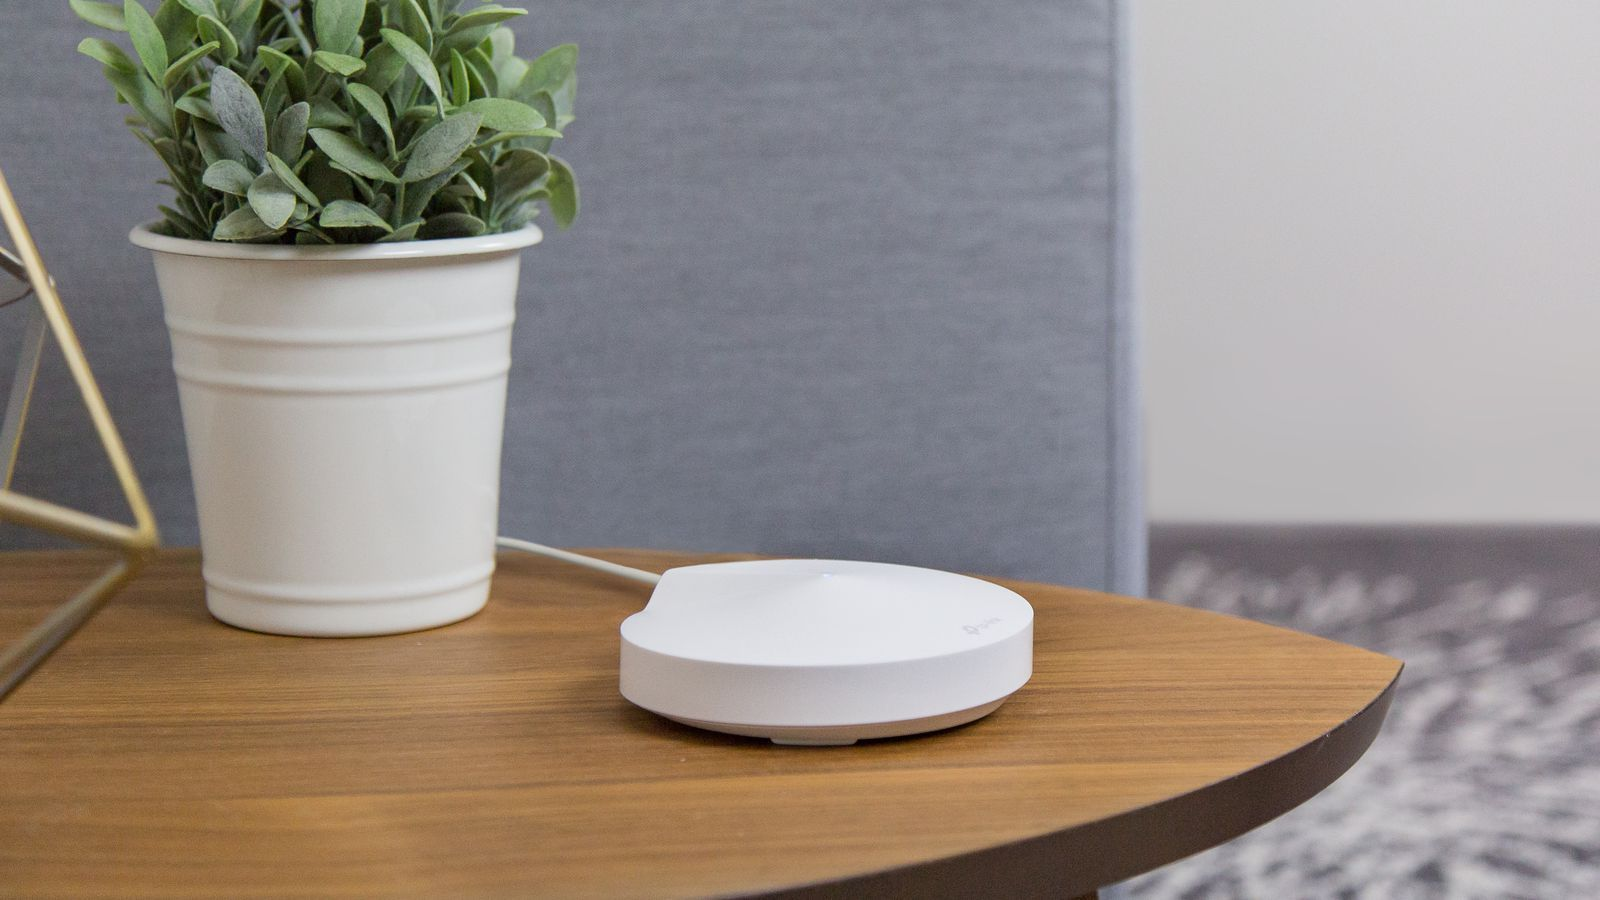 TP-Link joins the mesh router fight with the Deco M5